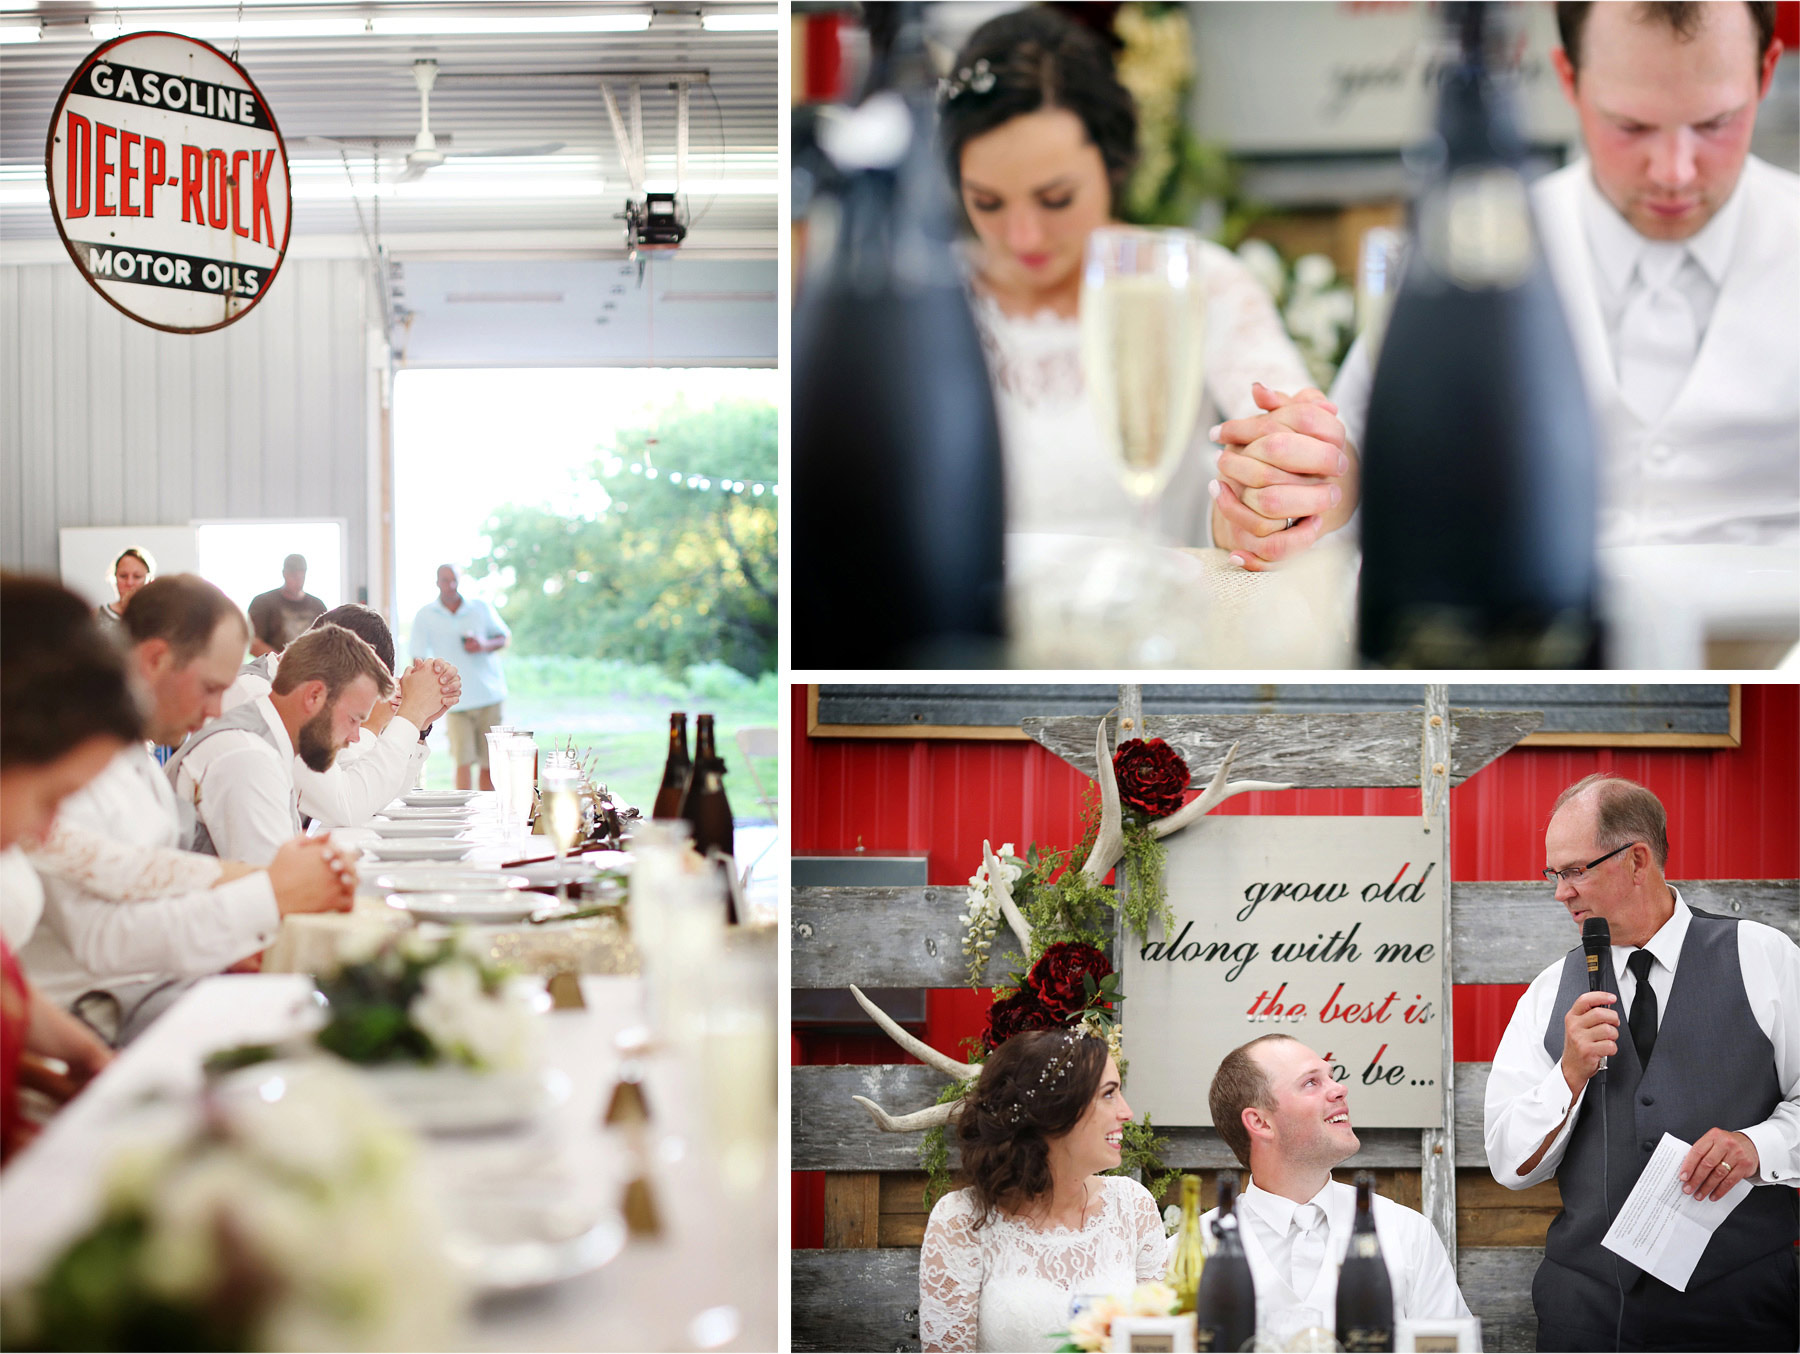 32-South-Haven-Minnesota-Wedding-Photographer-by-Andrew-Vick-Photography-Summer-Tomala-Farm-Reception-Prayer-Praying-Speeches-Renee-and-Bobb.jpg